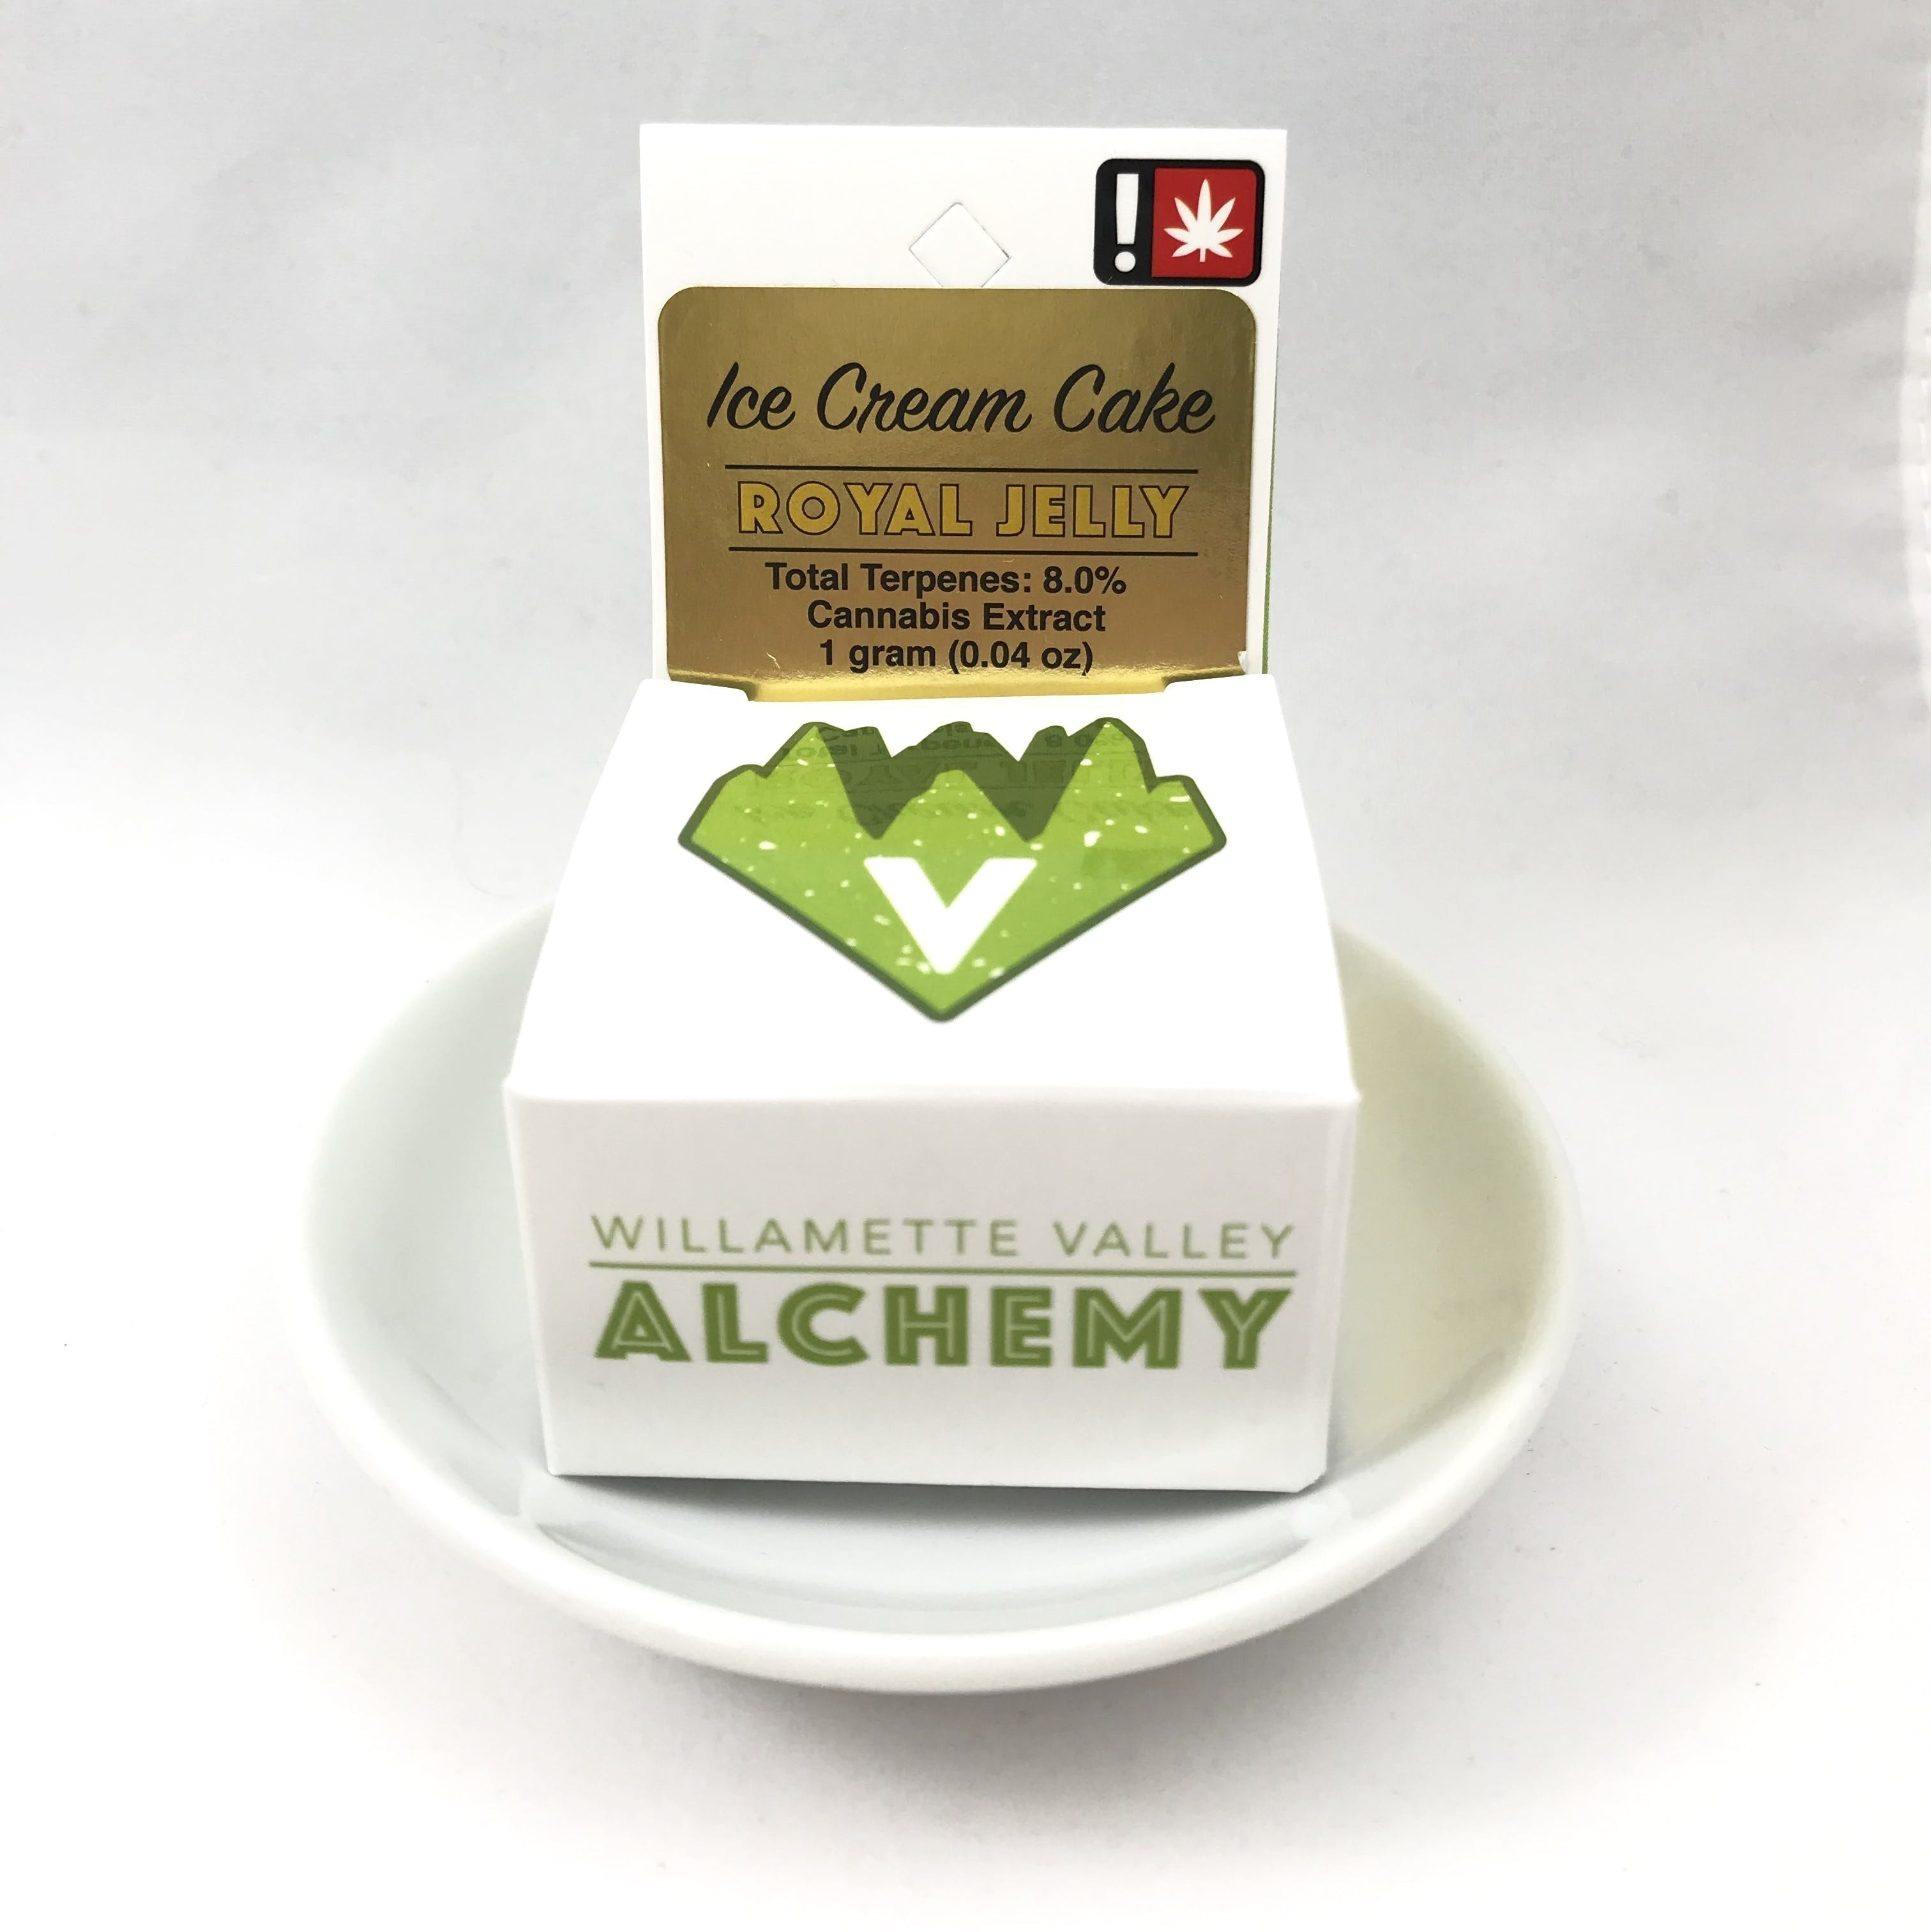 WILLAMETTE VALLEY ALCHEMY- Ice Cream Cake Royal Jelly